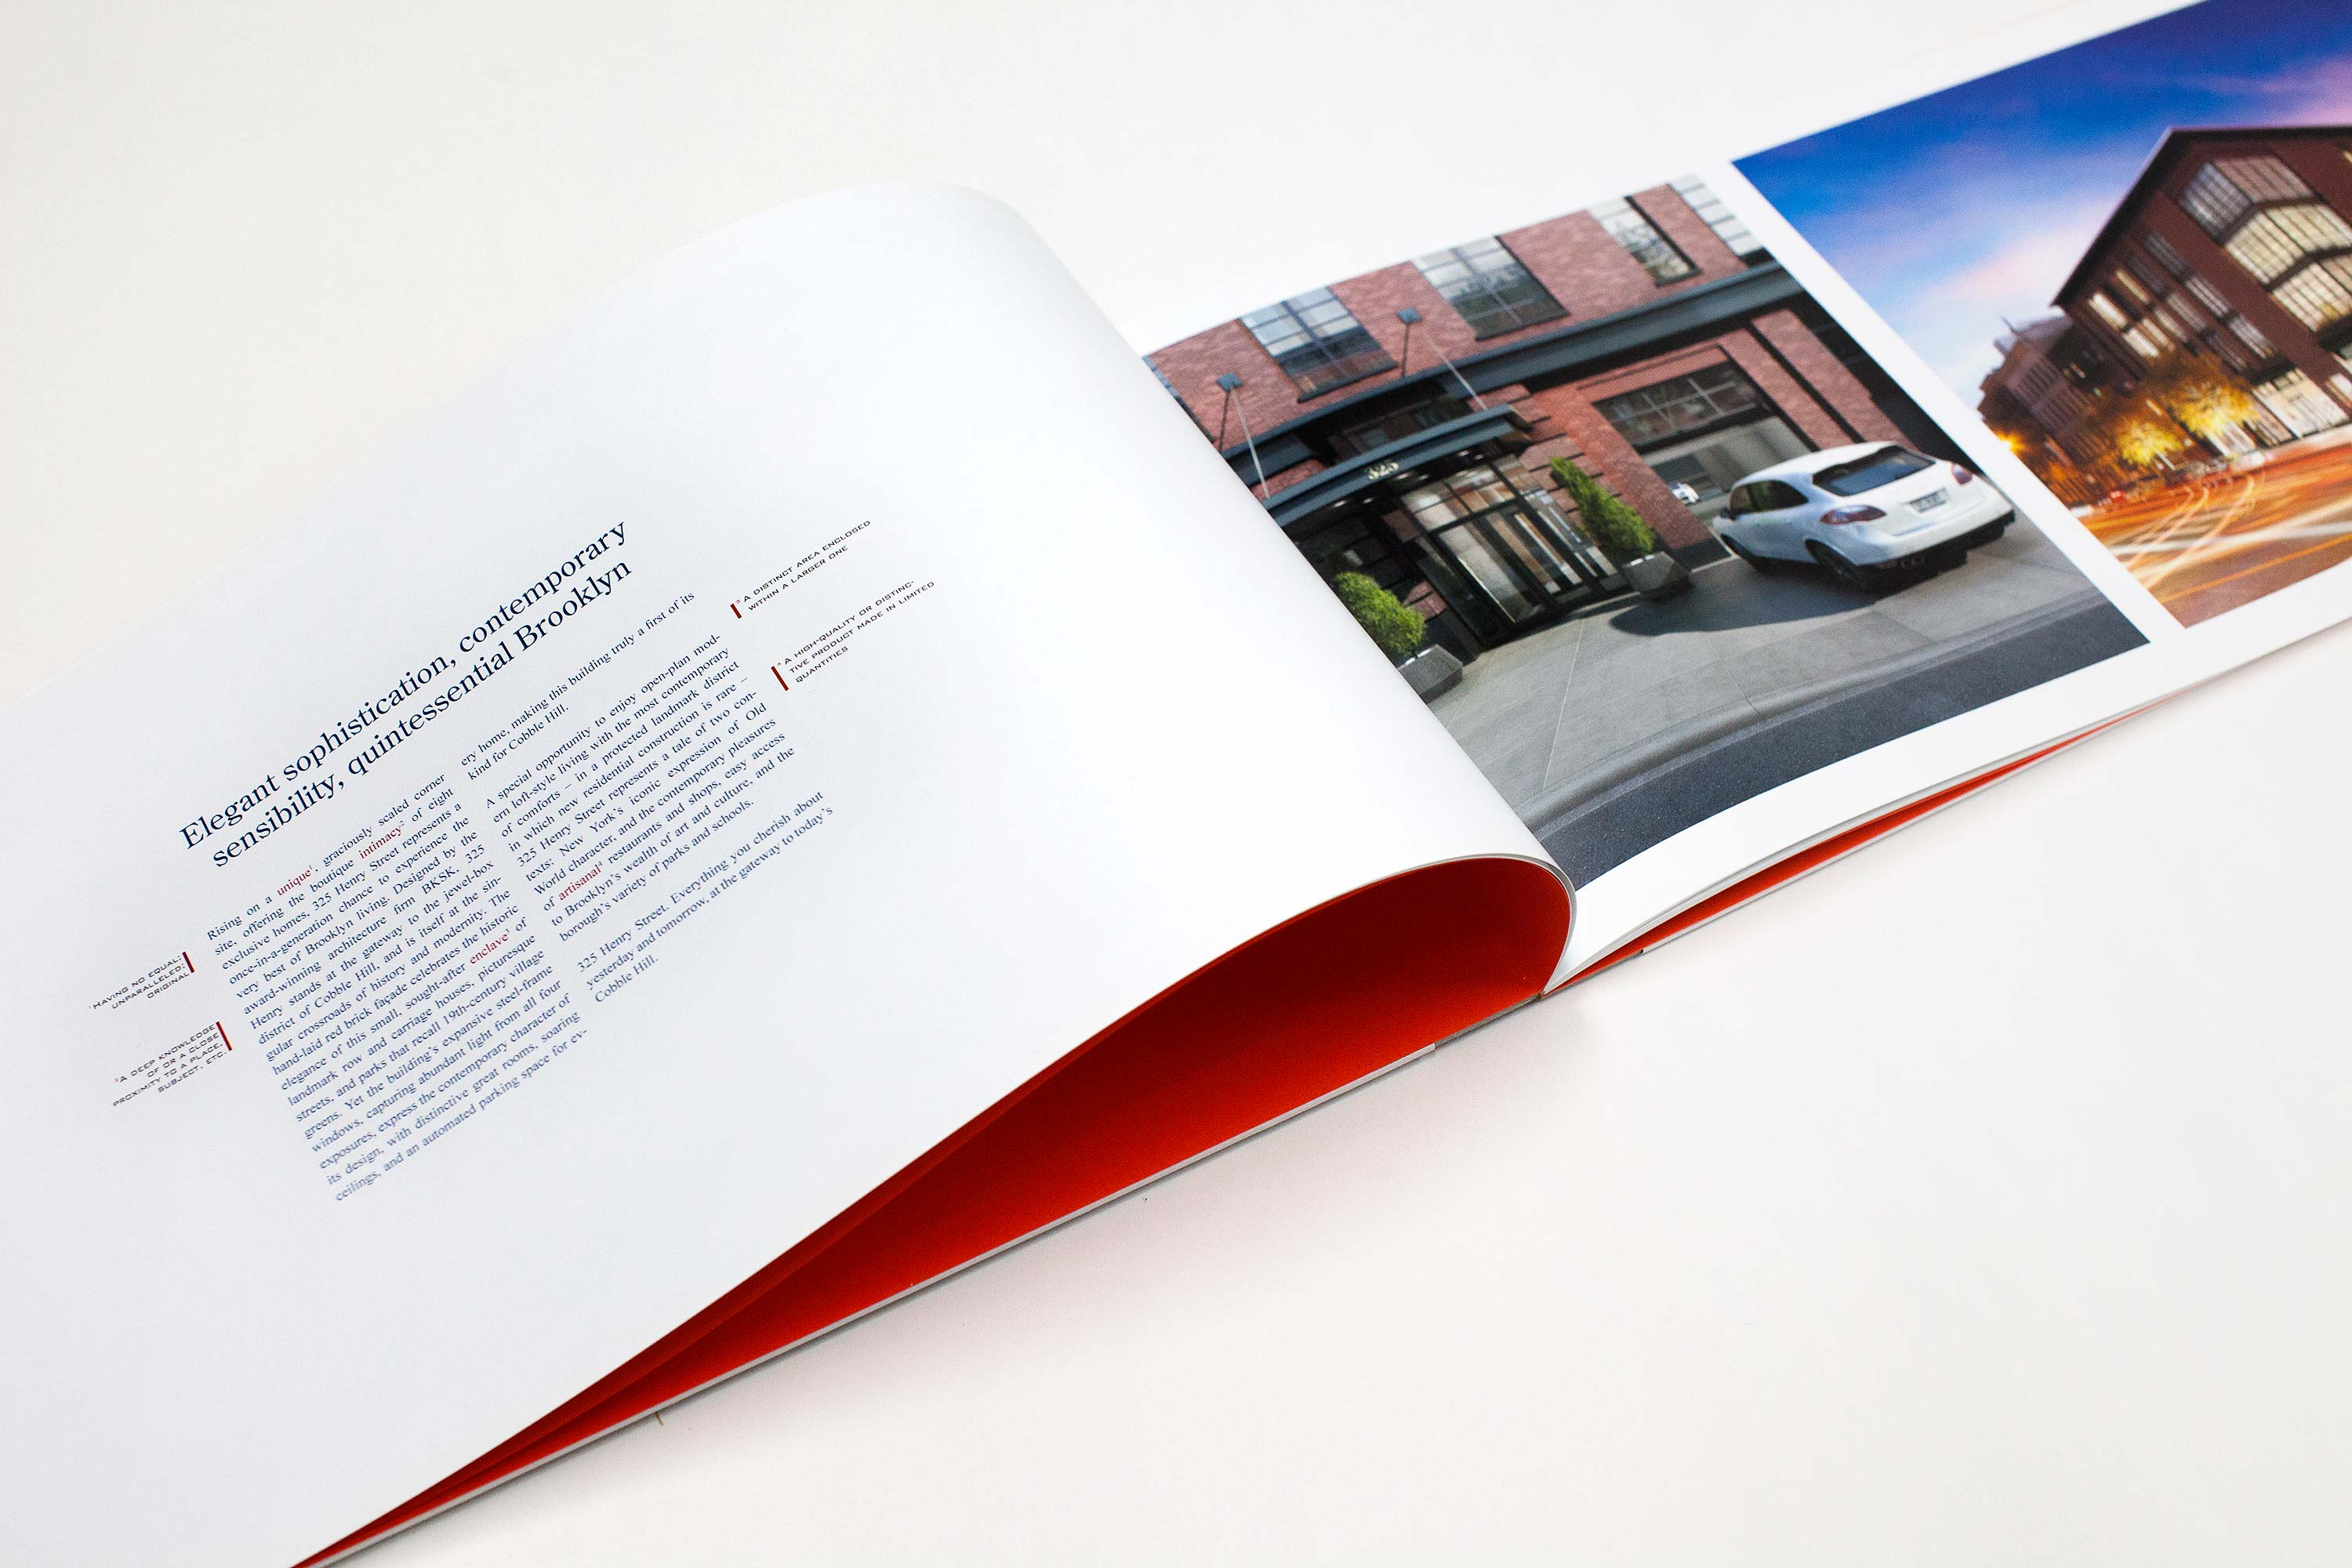 brochure spread showing entrance render